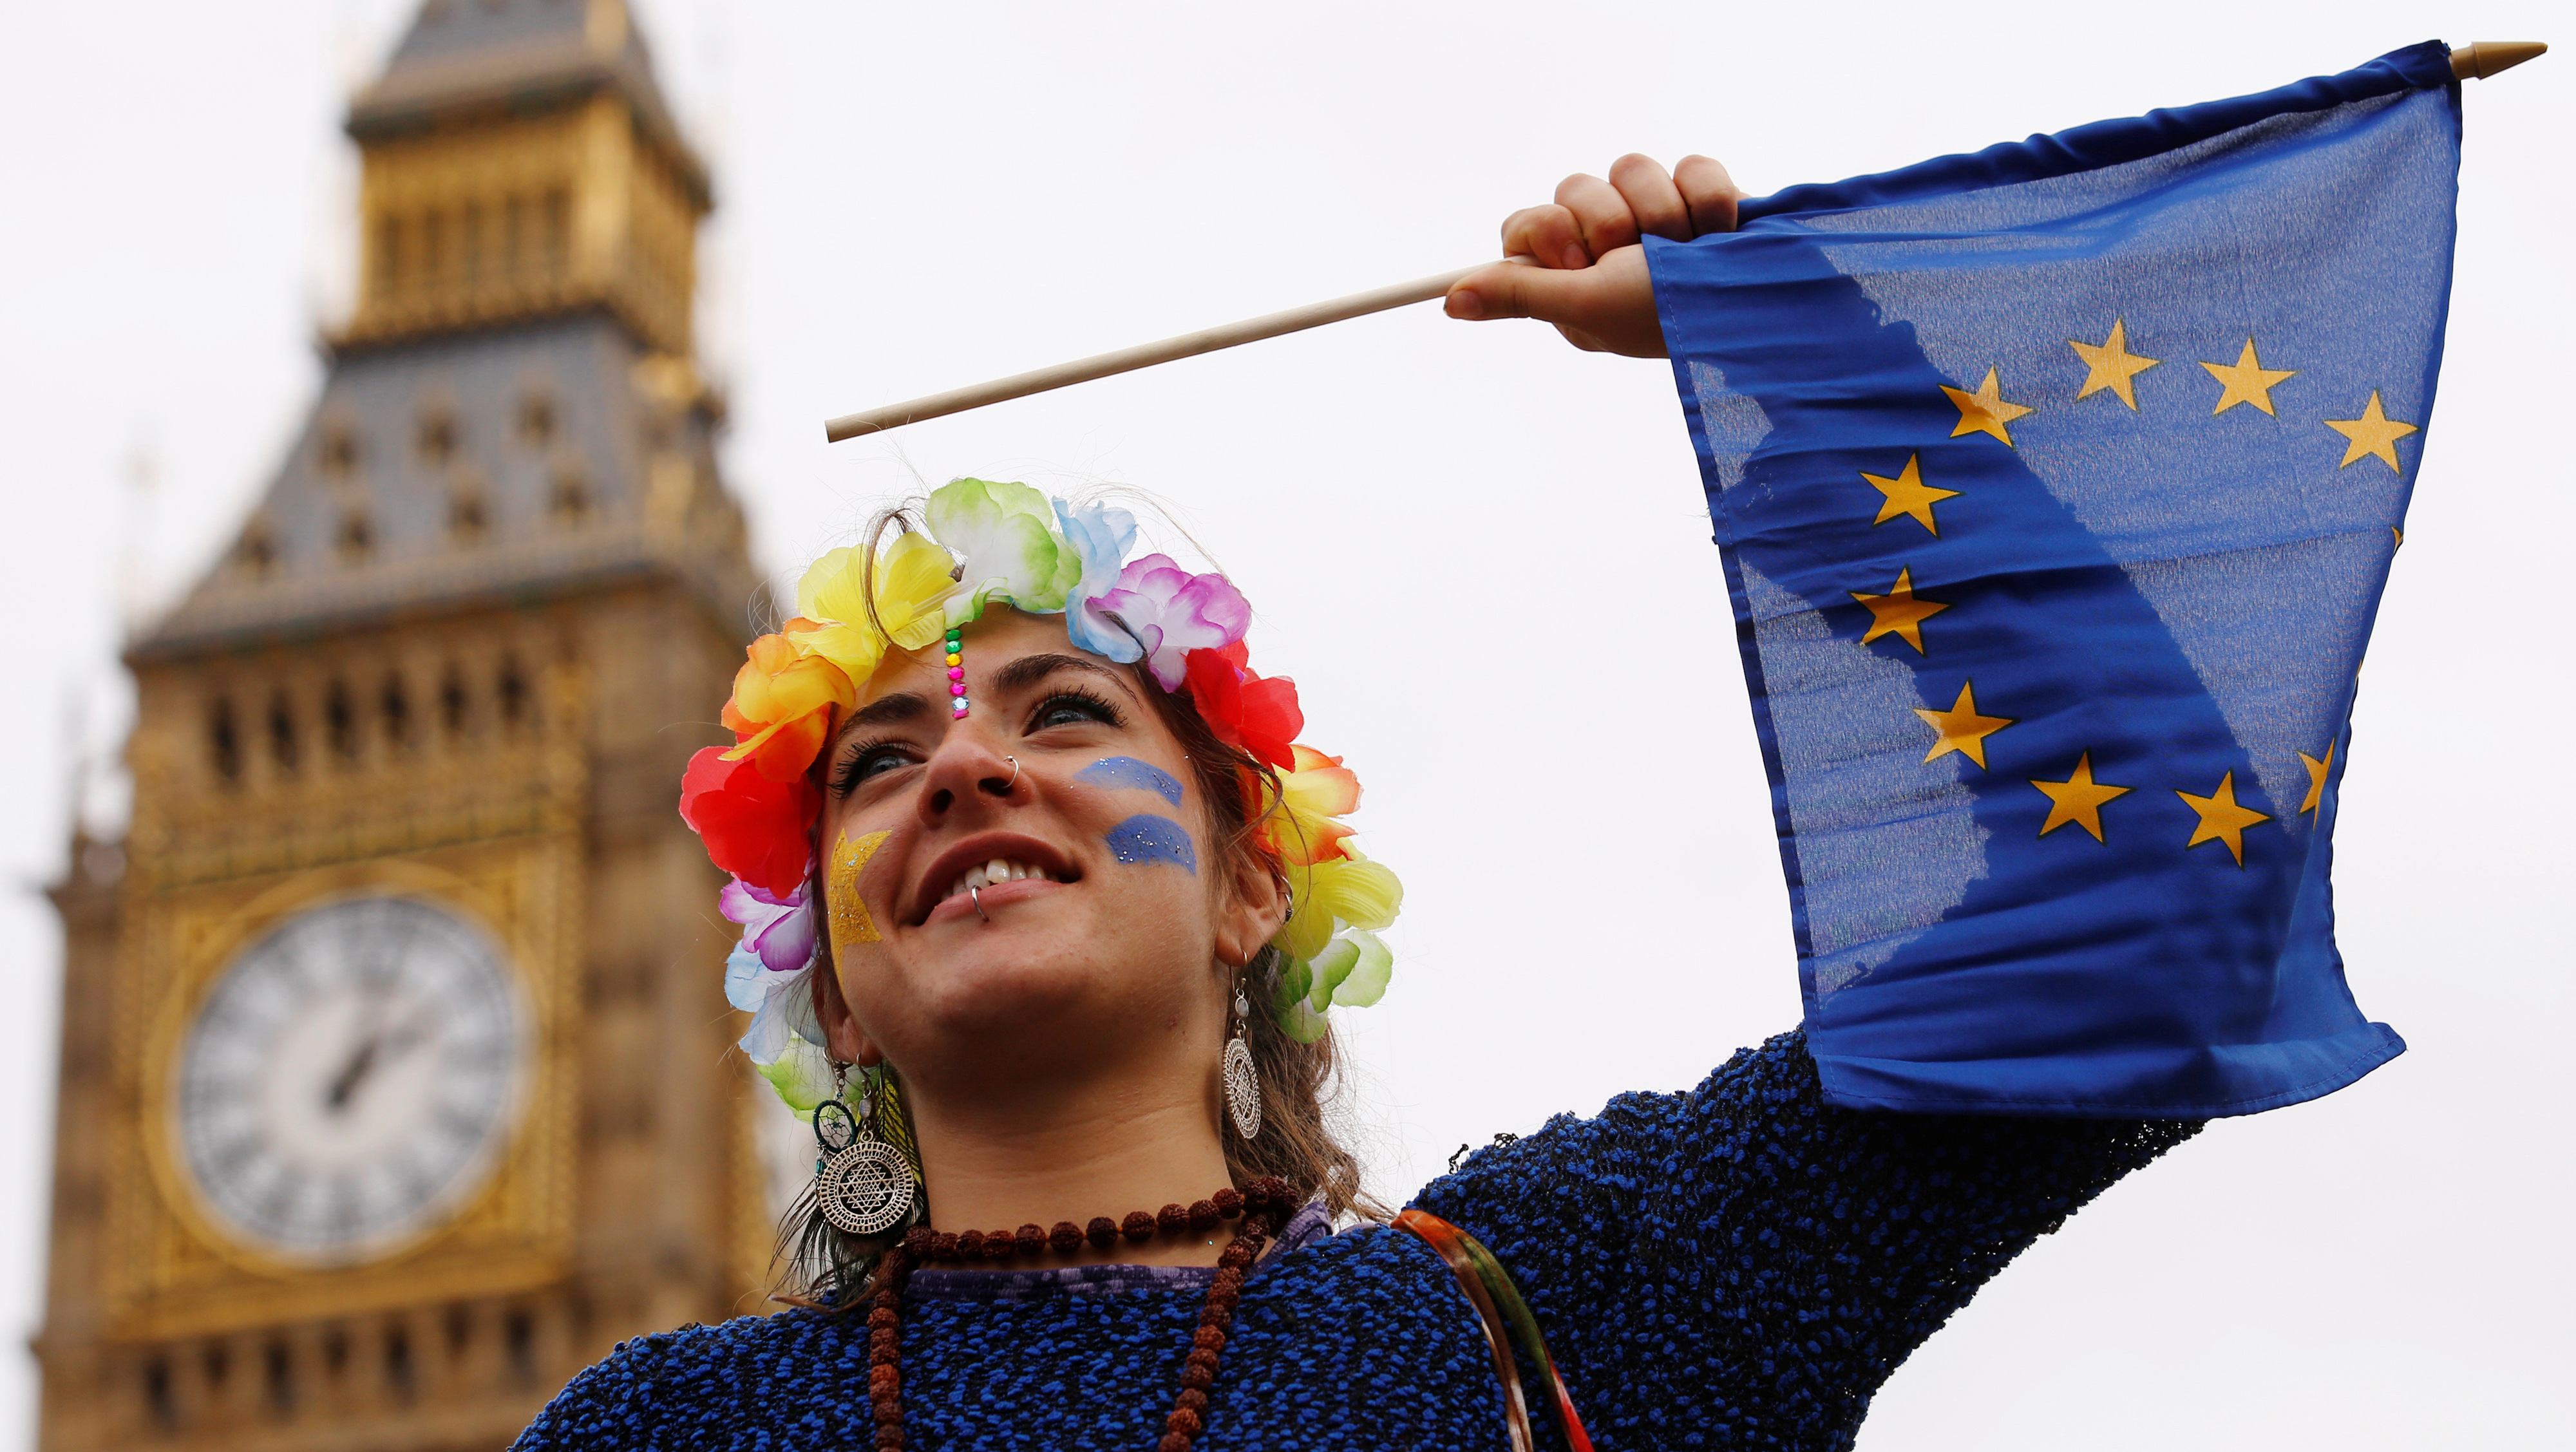 """A Pro-Europe demonstrator waves a flag during a """"March for Europe"""" protest against the Brexit vote result earlier in the year, in London, Britain, September 3, 2016.  REUTERS/Luke MacGregor   - RTX2NZUD"""